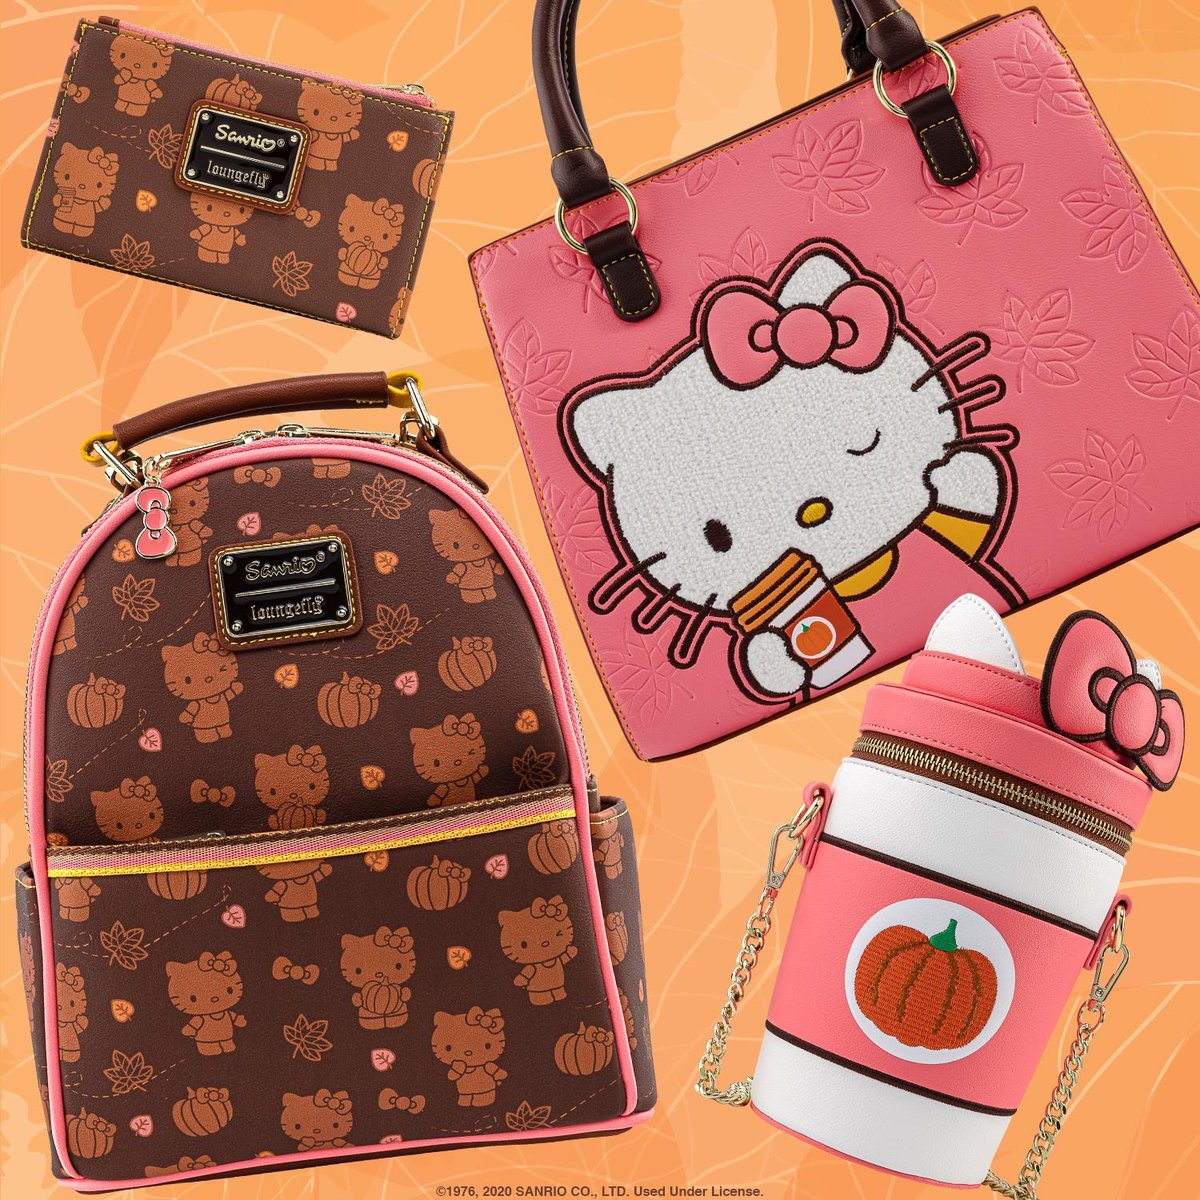 Say hello to whole latte of cuteness!!! Our@hellokittyPumpkin Spice collection is now live on bit.ly/3oe2xXK! Shop today while supplies last on this adorable collection! 🍂☕️🍂 @sanrio#Loungefly#Sanrio#HelloKitty